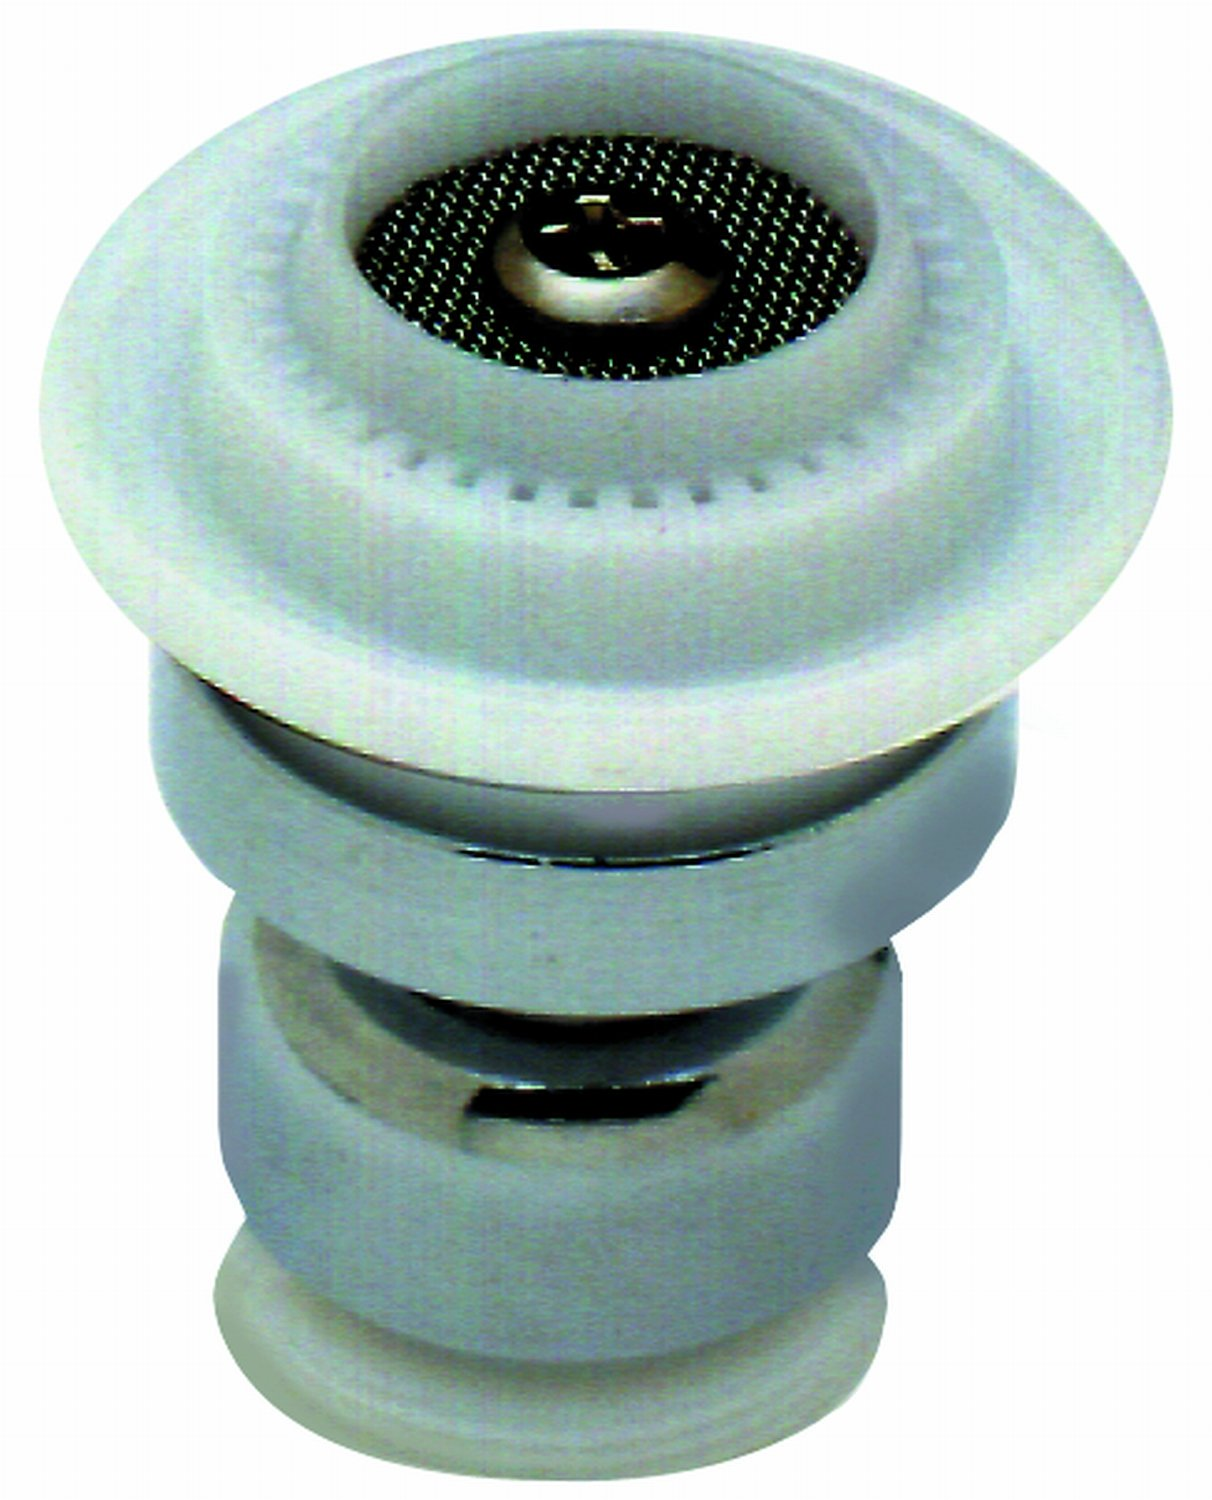 T&S Brass B-0199-22  Swivel Aerator, Dual Spray Pattern - Laminar Or Spray, 2.2 GPM, Thread Adapter Included